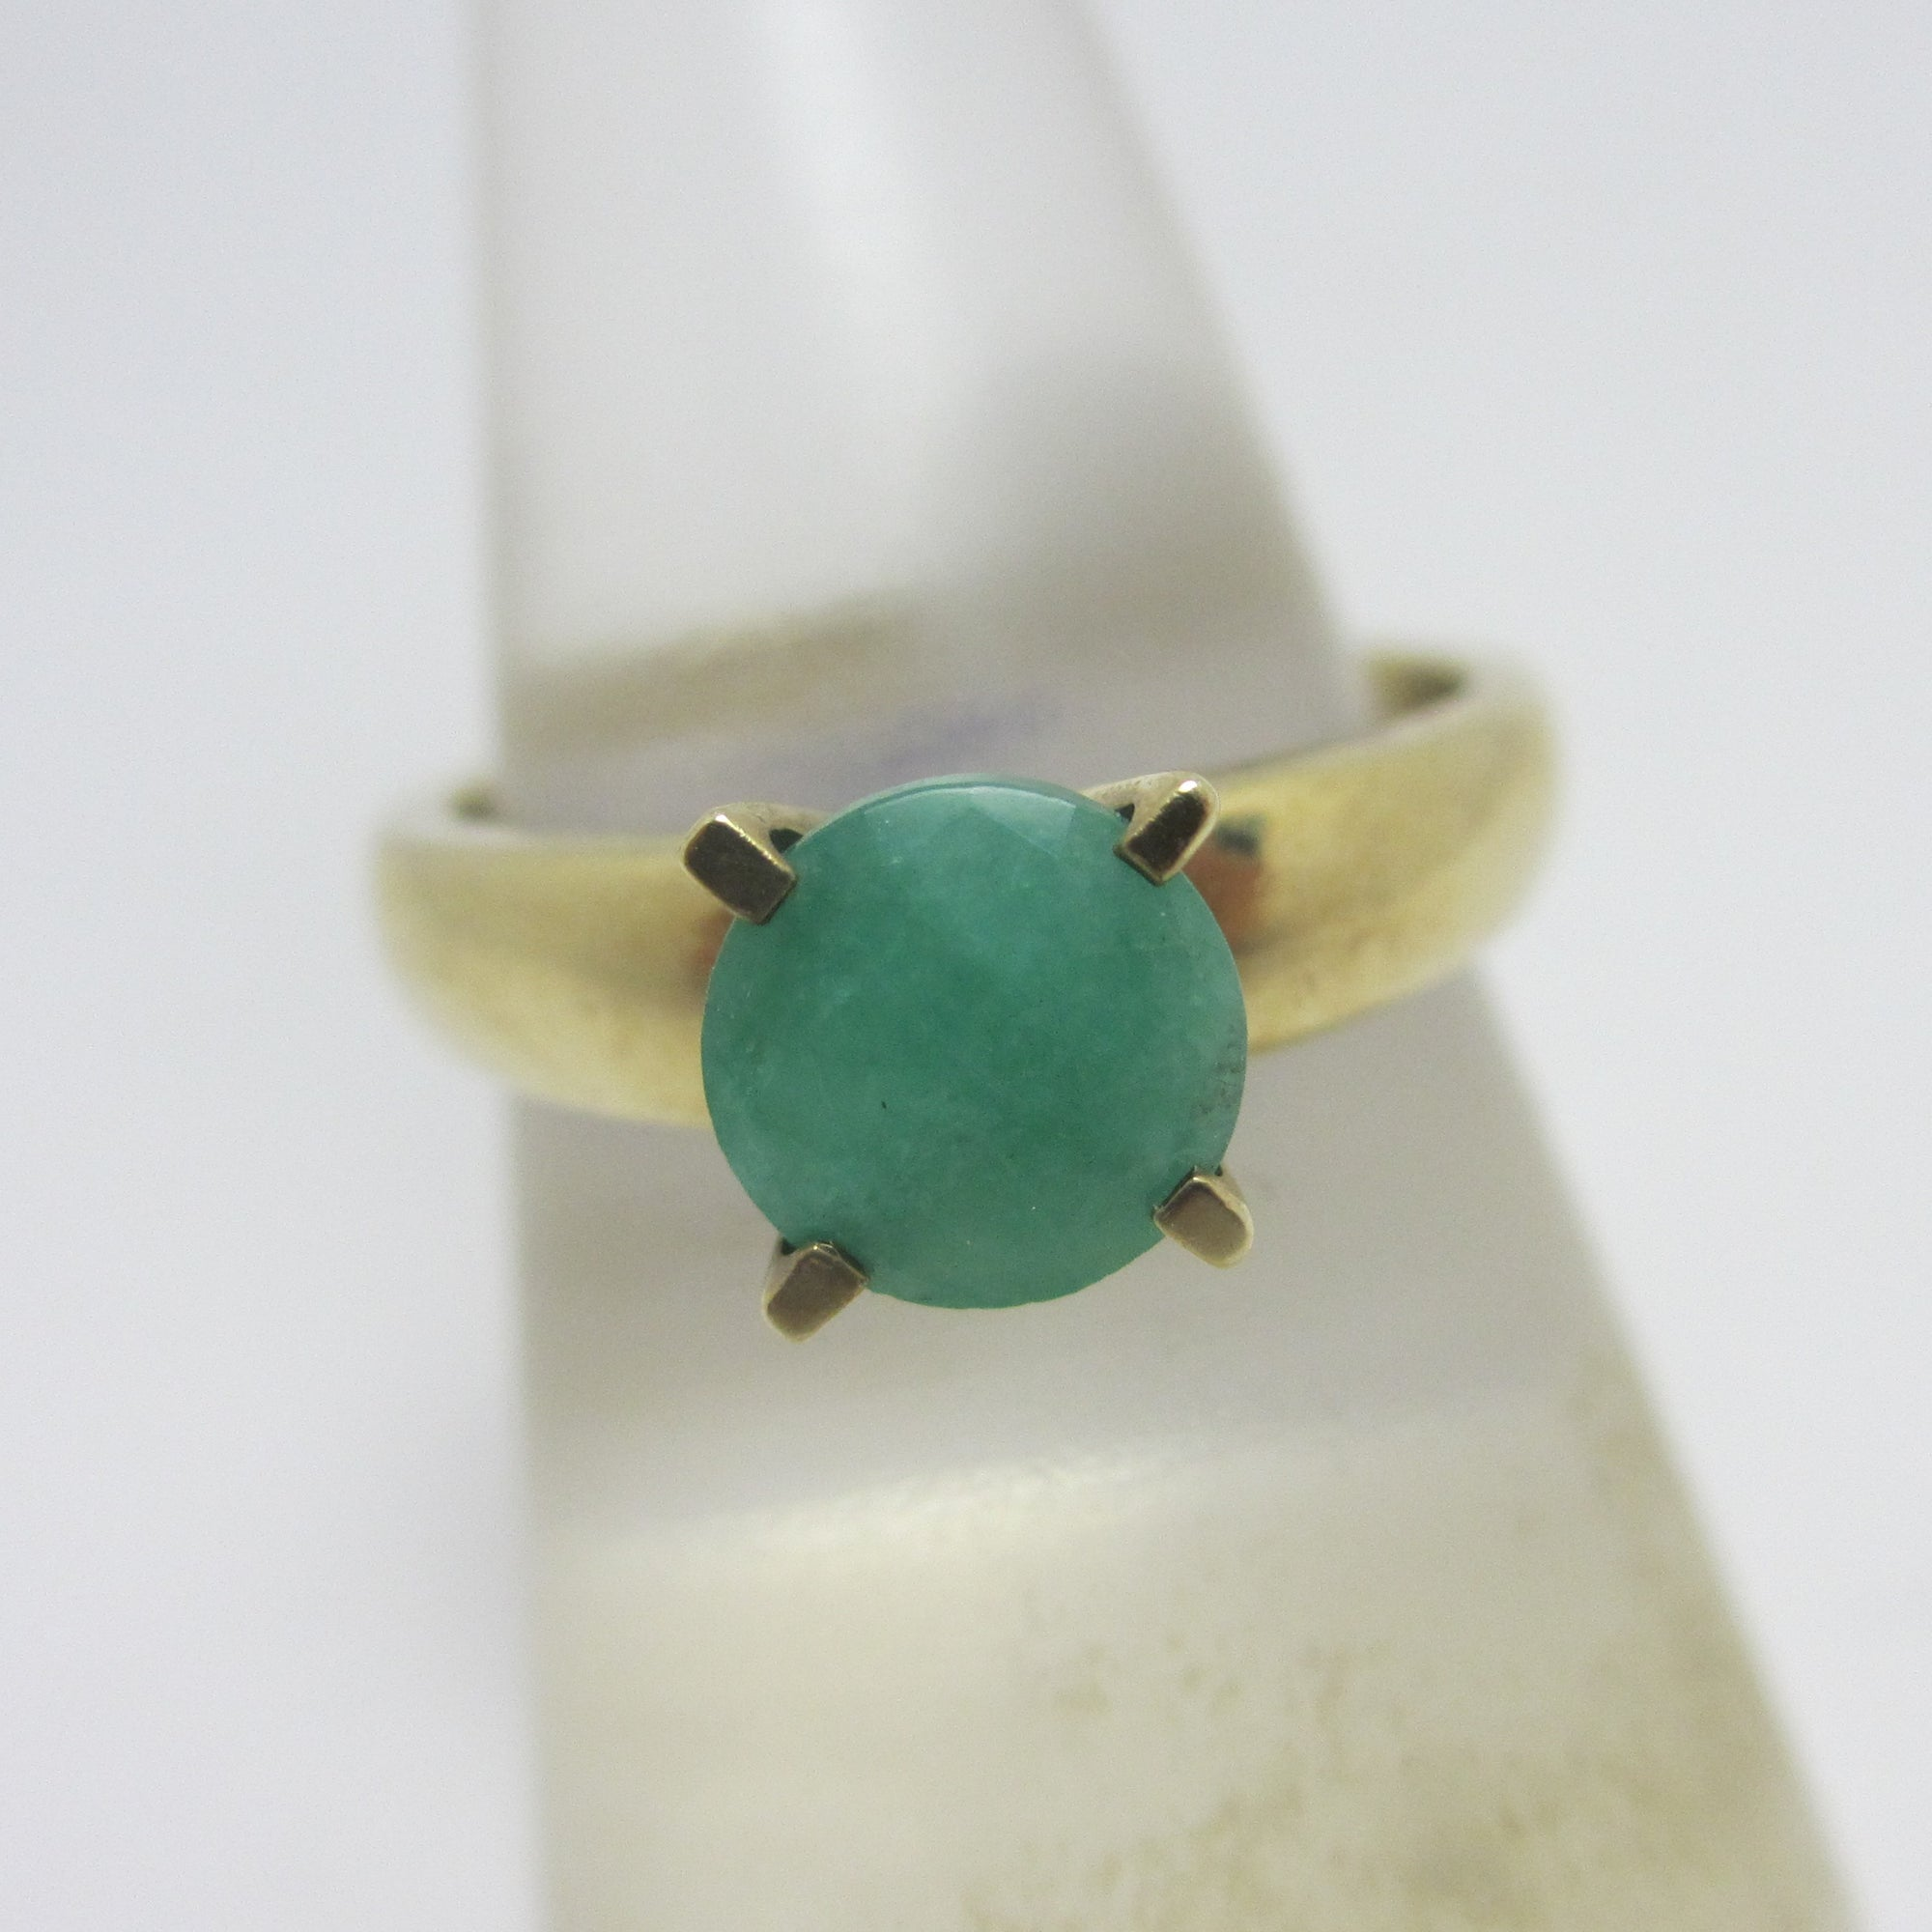 Solitaire Emerald in 9k Gold Ring Vintage c1980